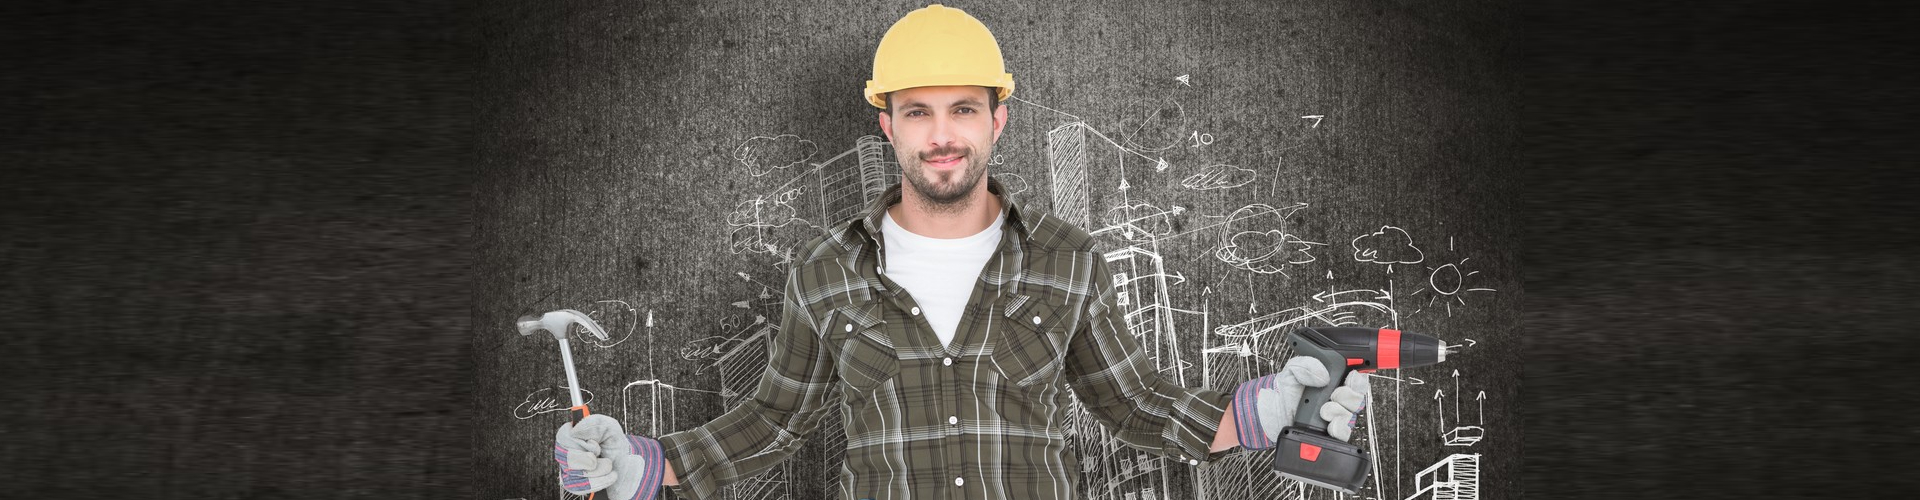 a construction worker with tools smiling at the camera